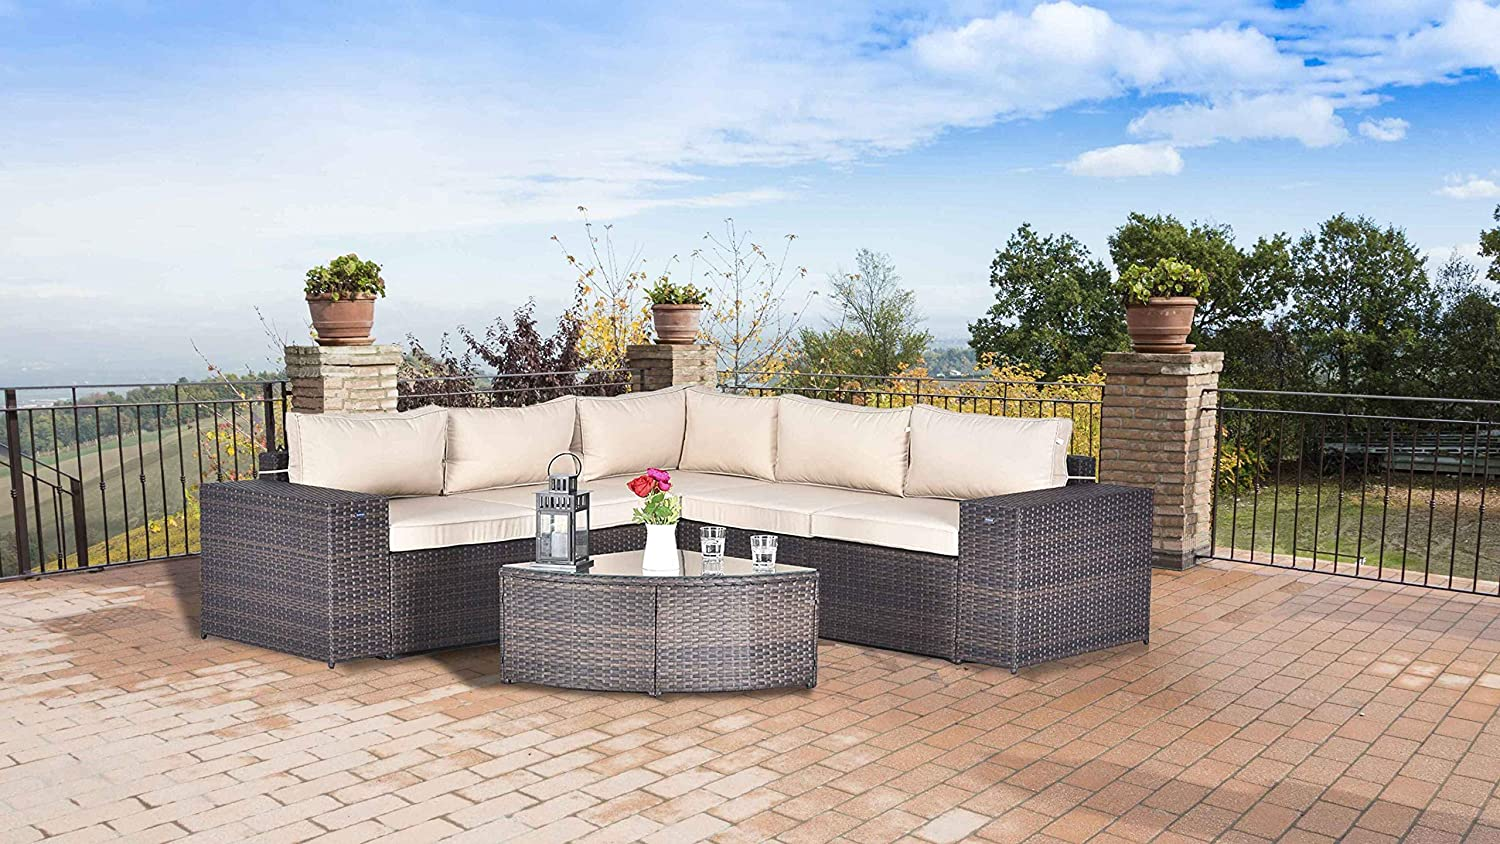 Fade Brown Gotland 6pcs Outdoor Rattan Sectional Sofa Wide Armrest Patio Wicker Furniture Set ,with Weather Resistant Tan Cushions /& Tea Table